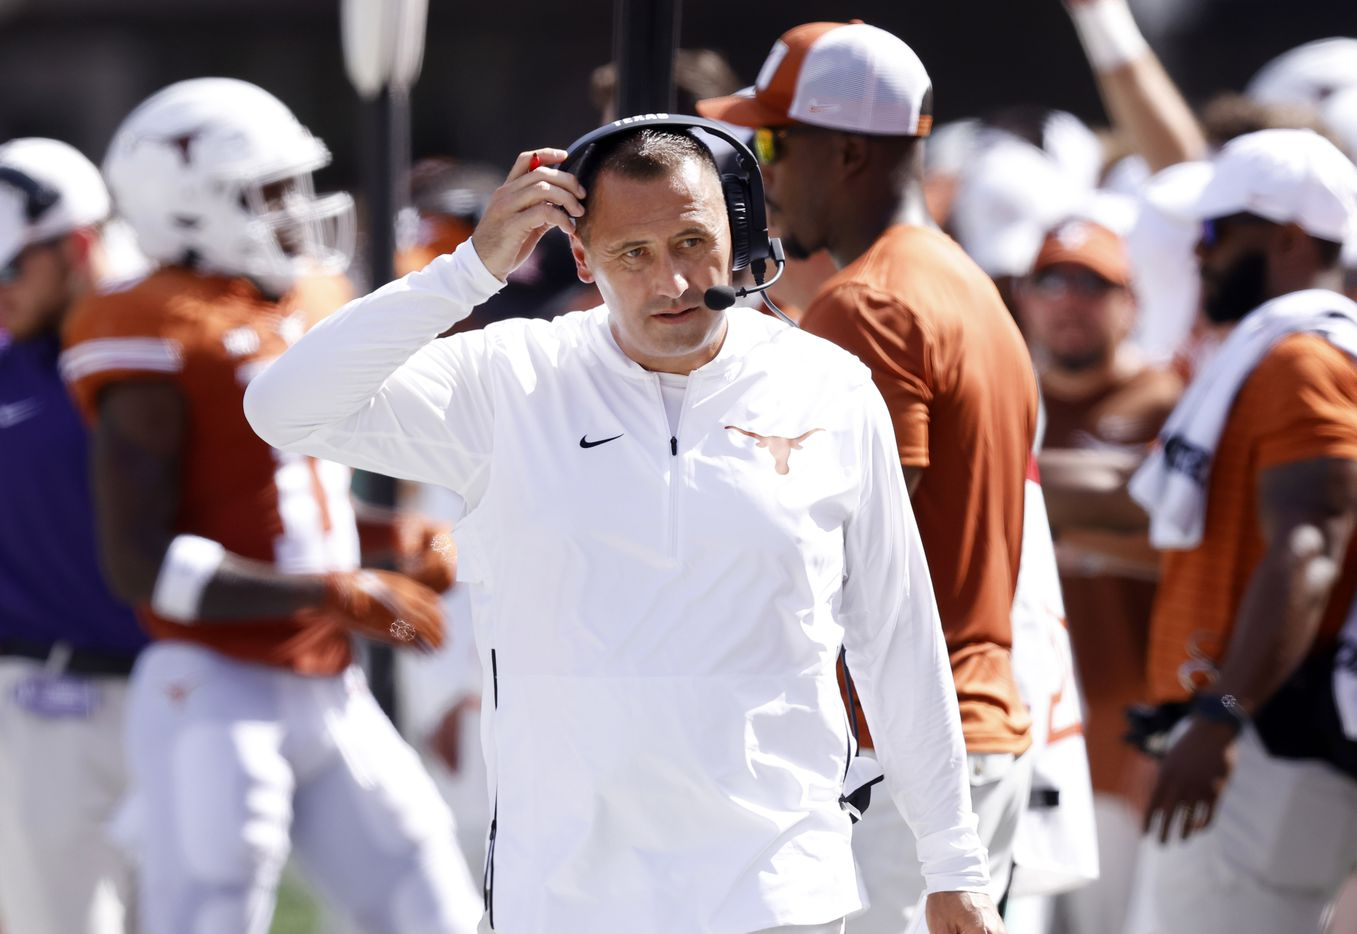 Texas Longhorns head coach Steve Sarkisian paces the sidelines during a first half timeout against the Louisiana-Lafayette Ragin Cajuns at DKR-Texas Memorial Stadium in Austin, Saturday, September 4, 2021. (Tom Fox/The Dallas Morning News)